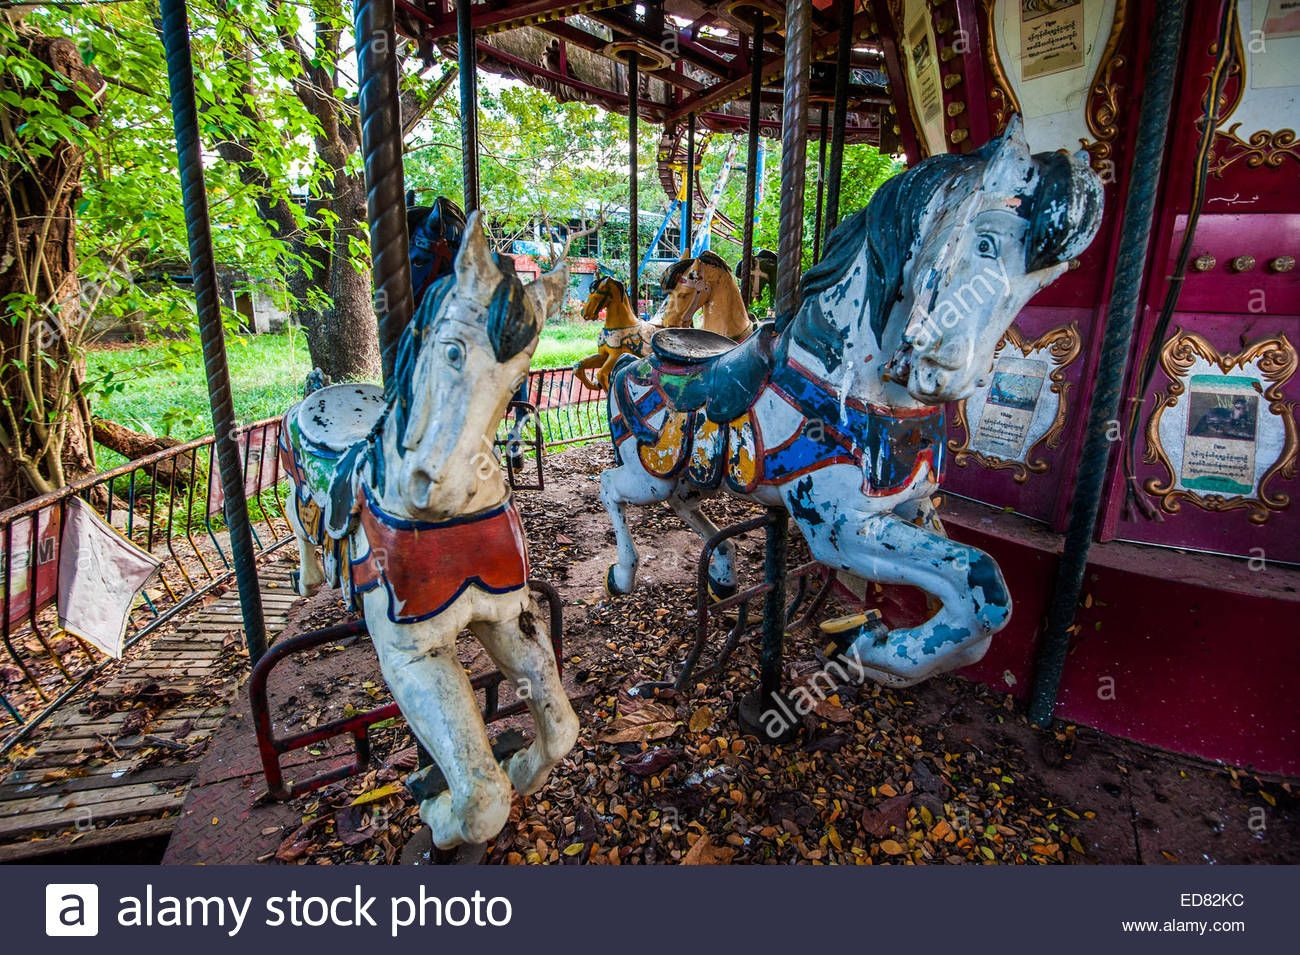 Decaying Horses On Carousel At Abandoned Amusement Park In Yangon Stock Photo Royalt Abandoned Amusement Park Abandoned Theme Parks Abandoned Amusement Parks